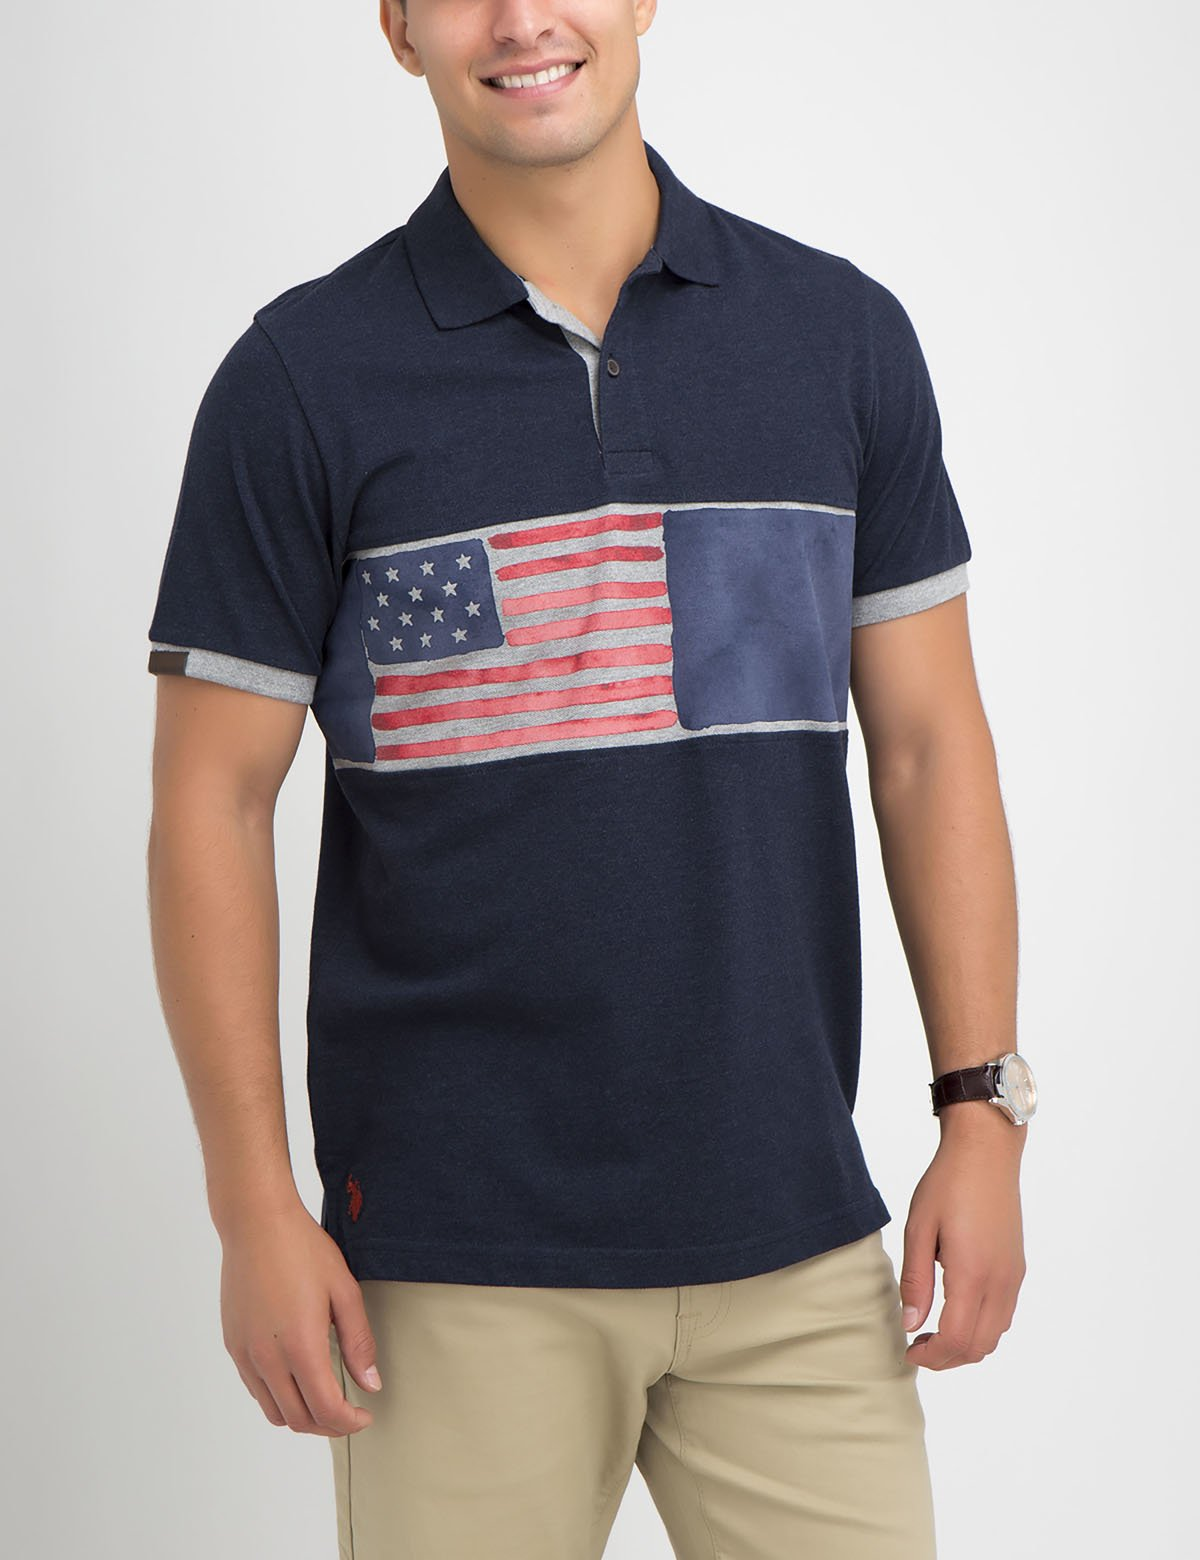 FLAG PRINT POLO SHIRT